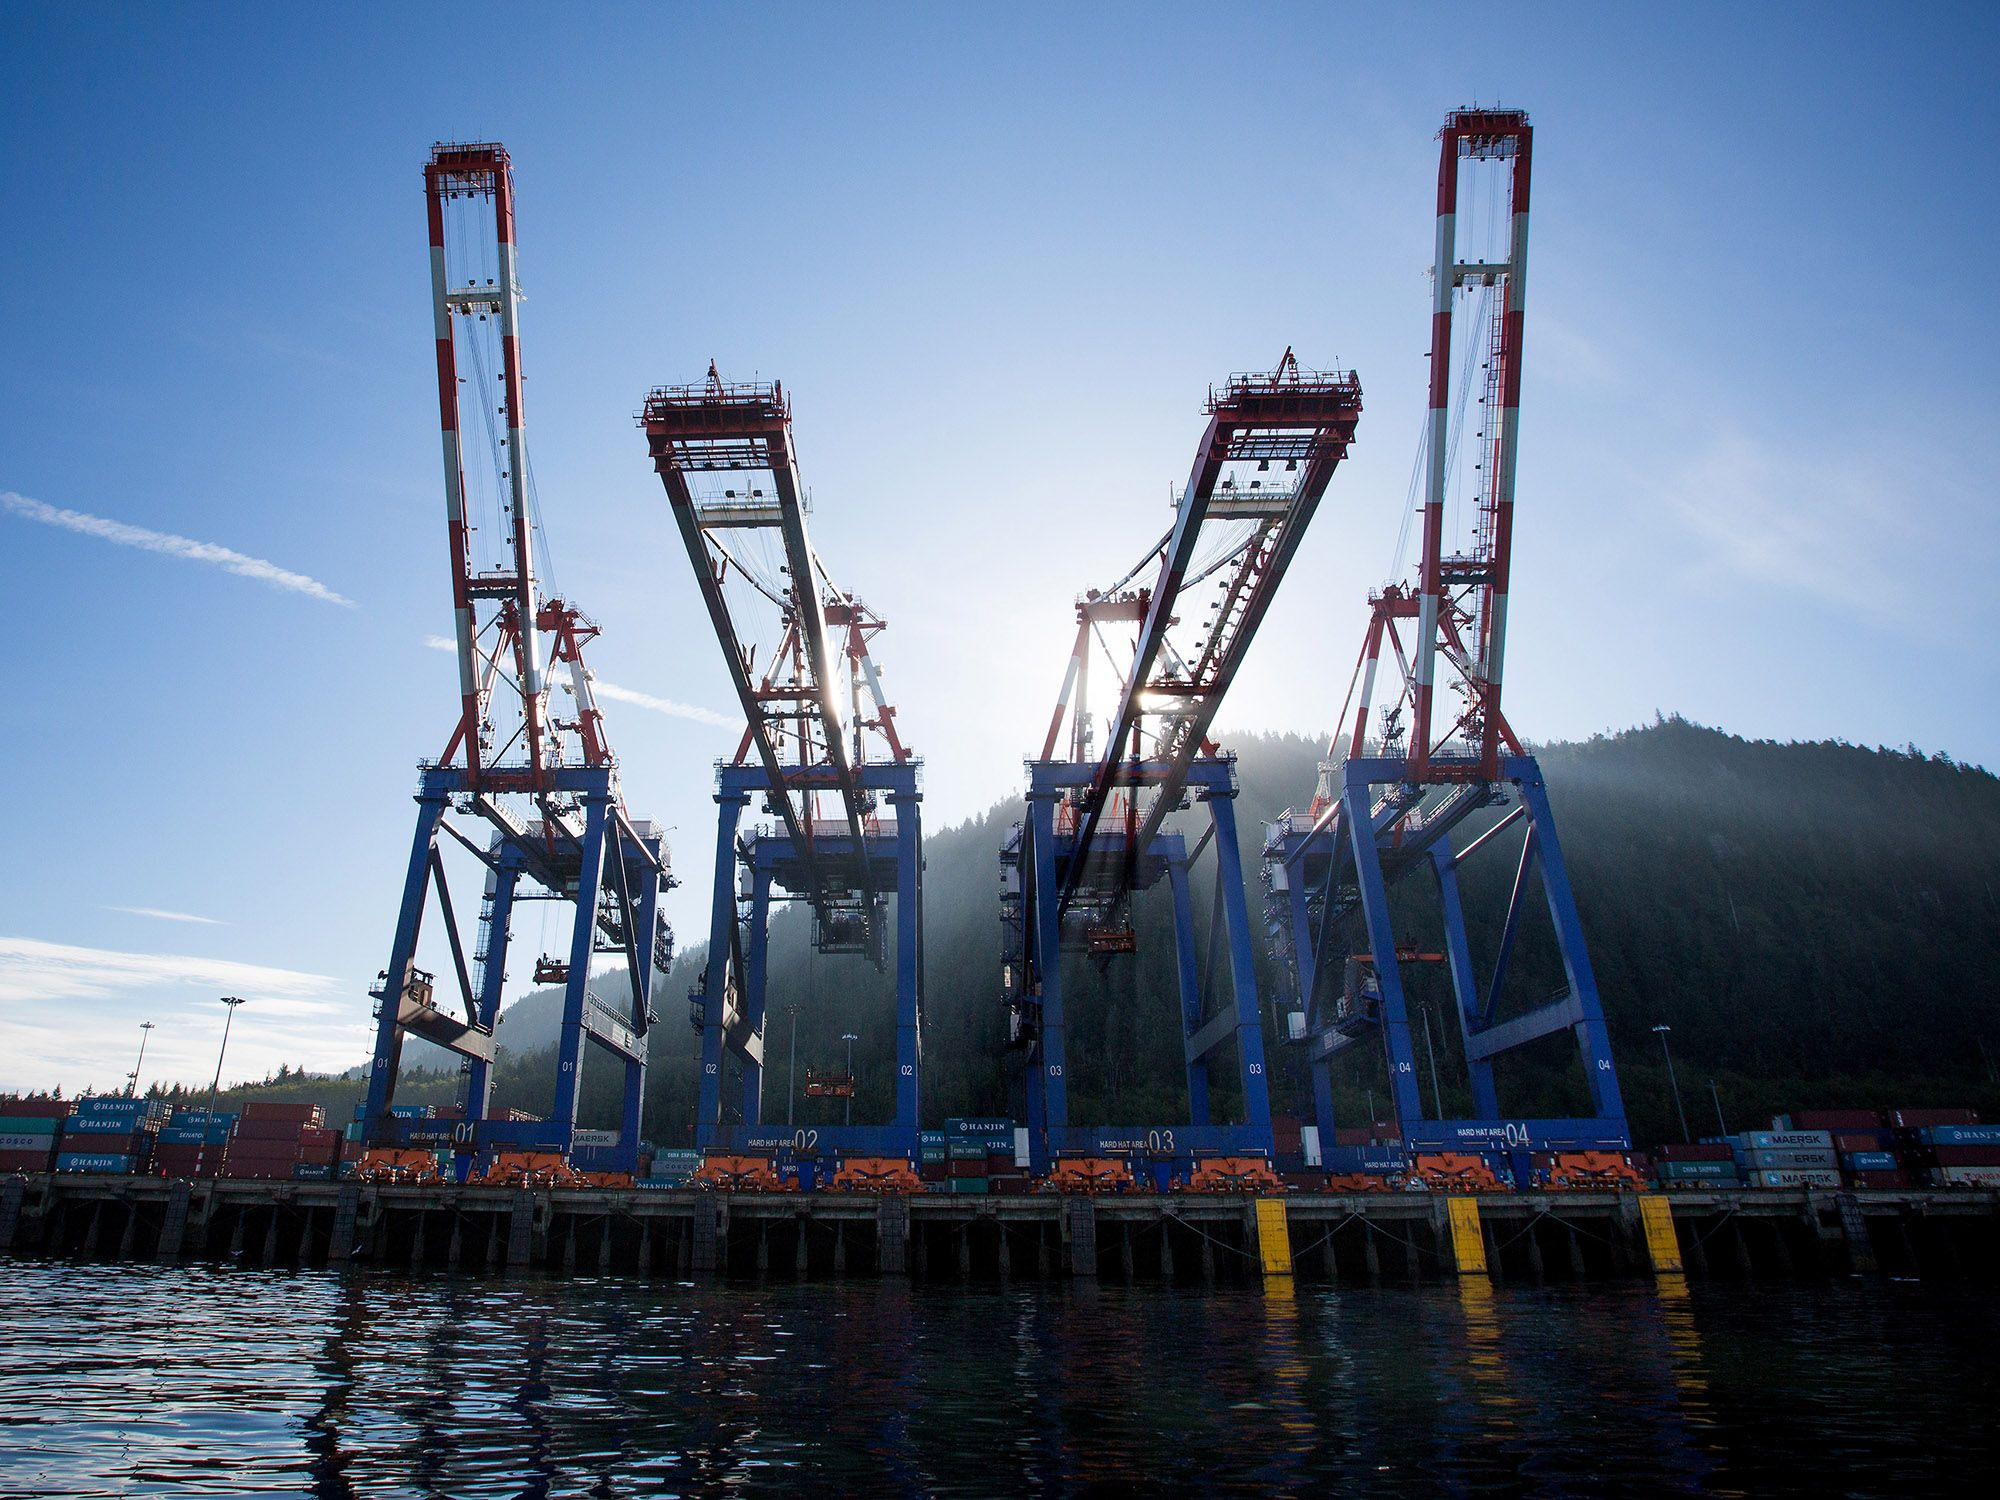 Container cranes stand at the Fairview Container terminal of the Port of Prince Rupert in Prince Rupert, British Columbia, Canada